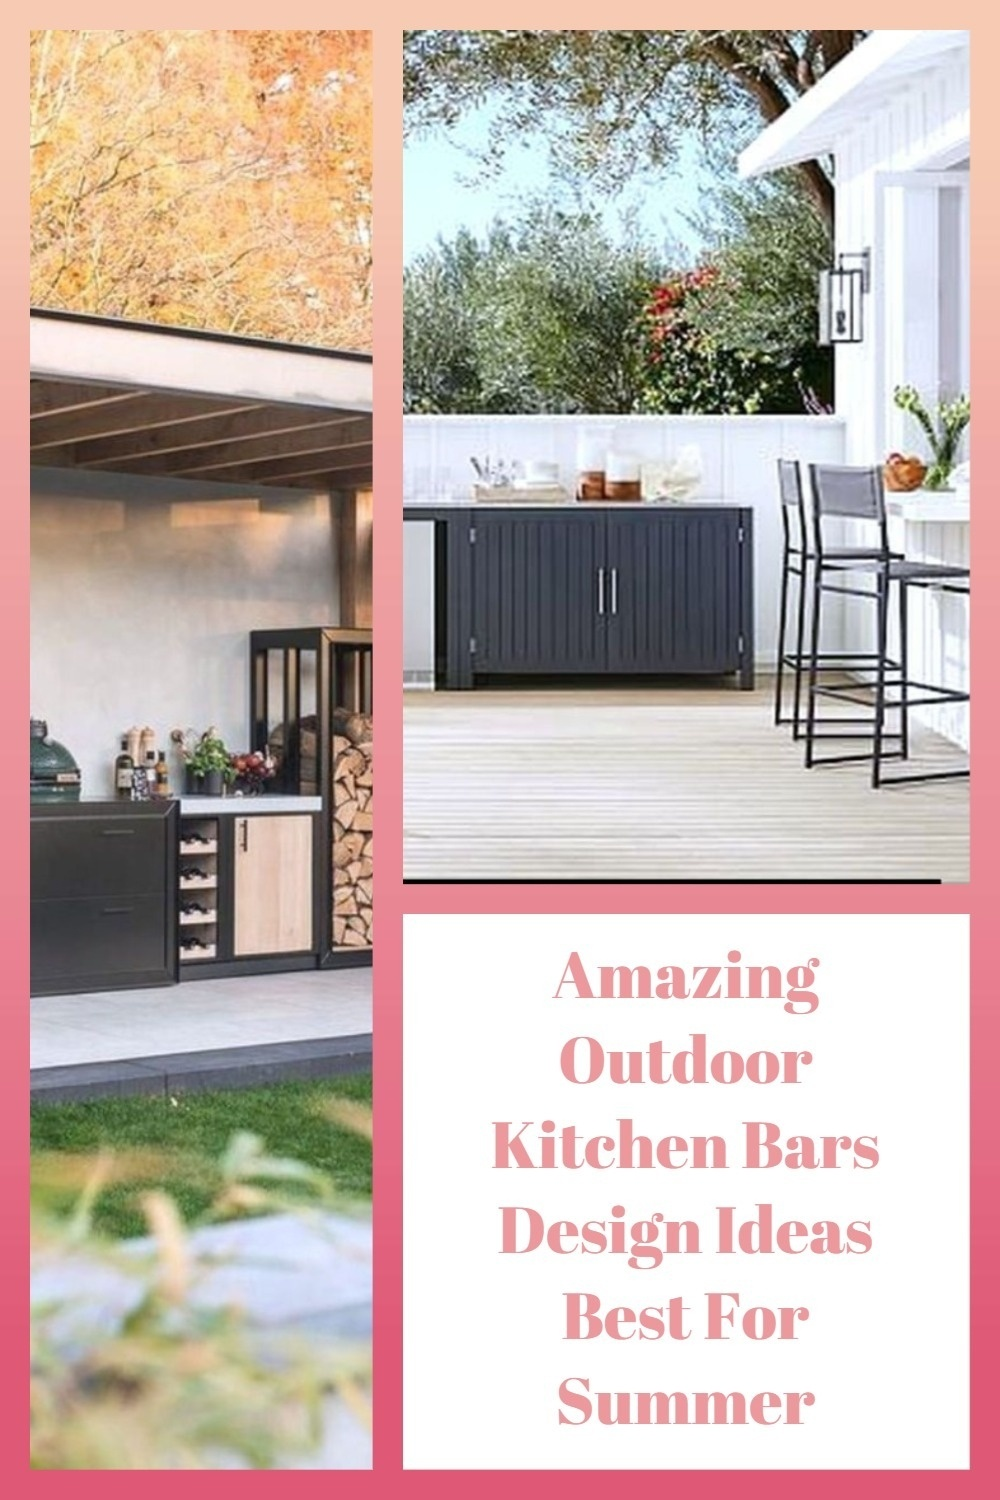 Amazing Outdoor Kitchen Bars Design Ideas Best For Summer